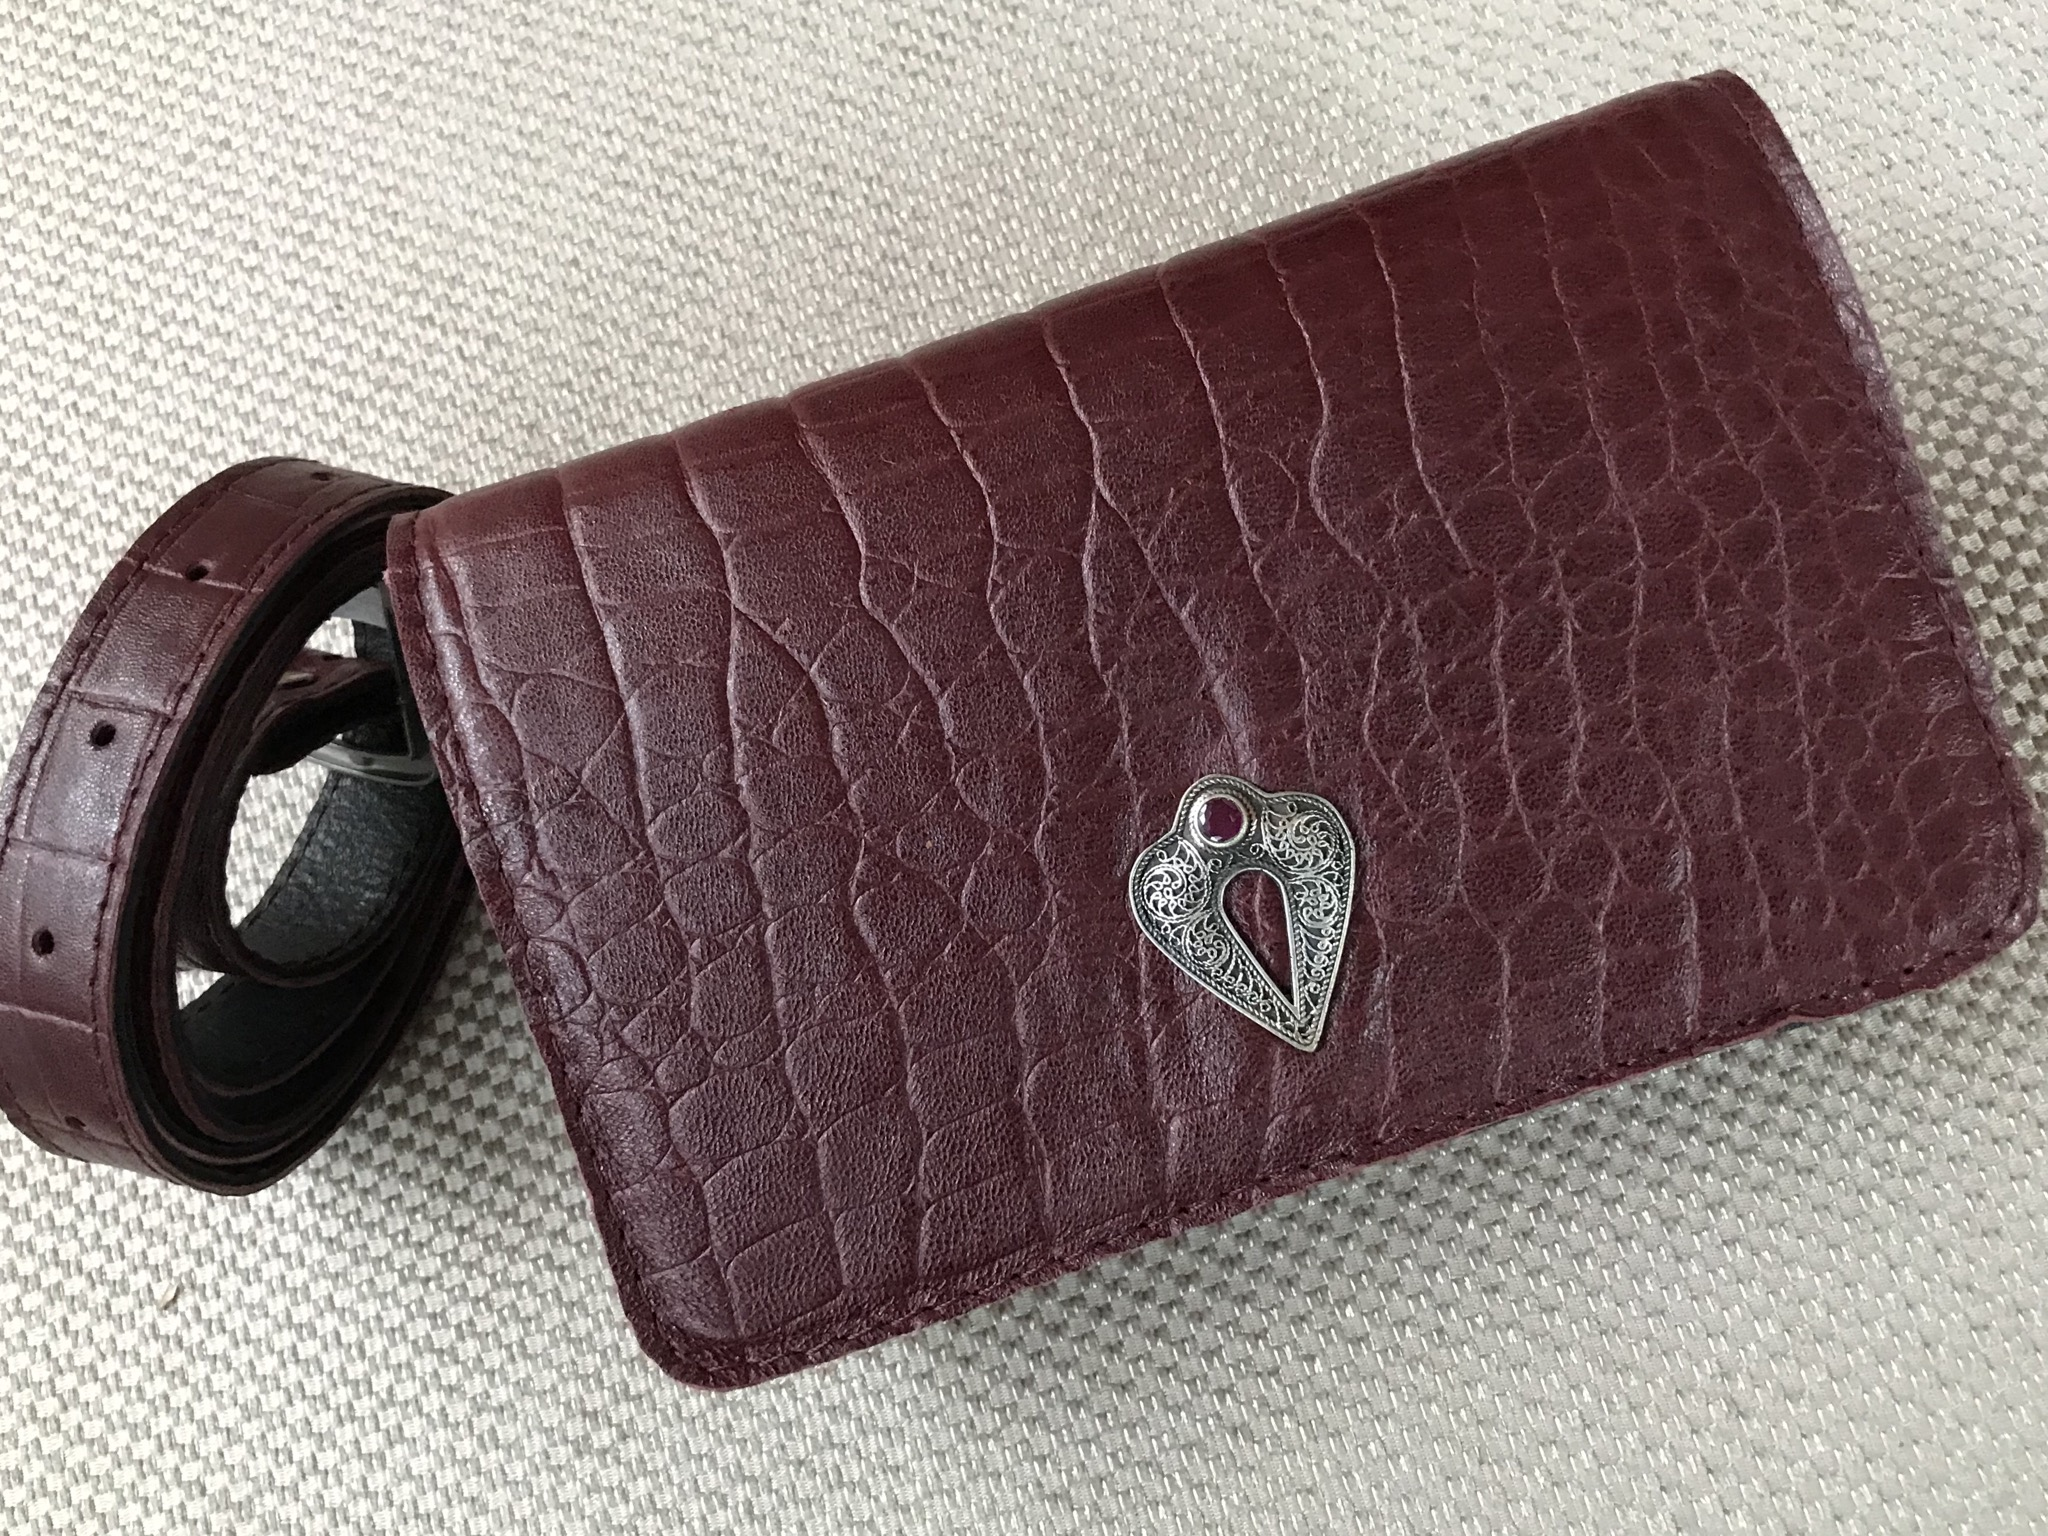 Beltbag Leather croco burgundy with jewelry